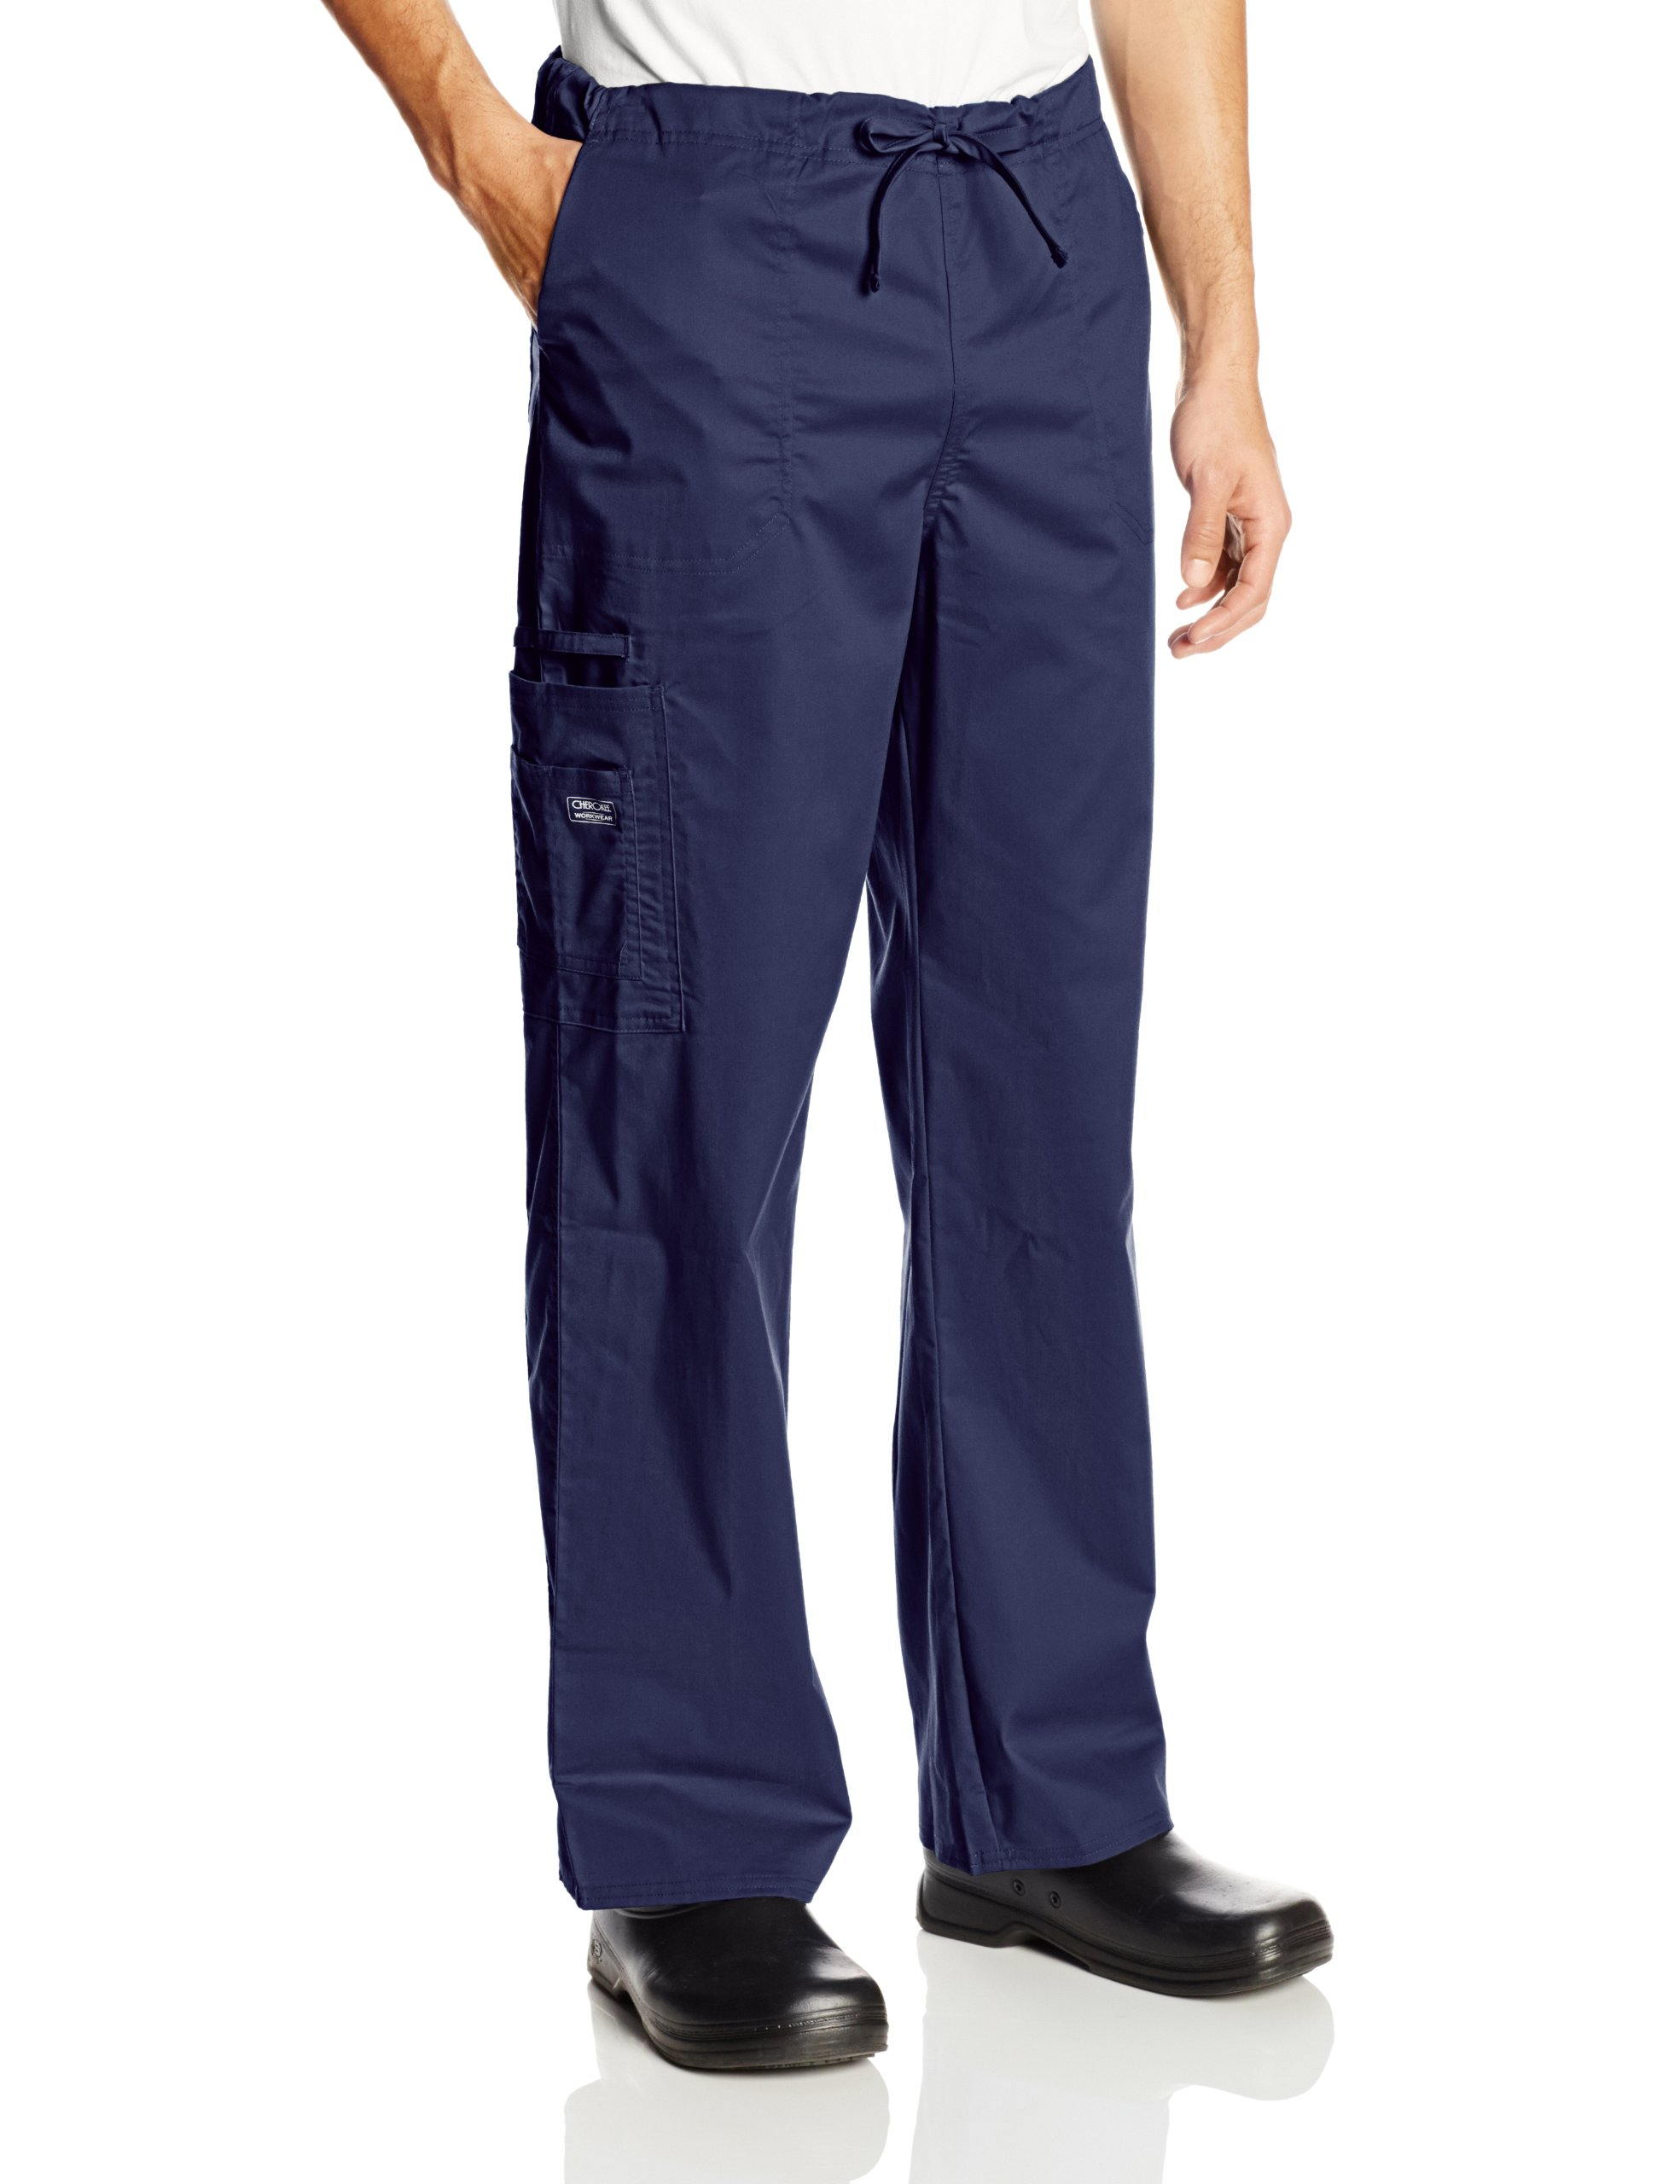 Cherokee Workwear Scrubs Unisex Stretch Cargo Pant, Navy, Small by Cherokee (Image #1)